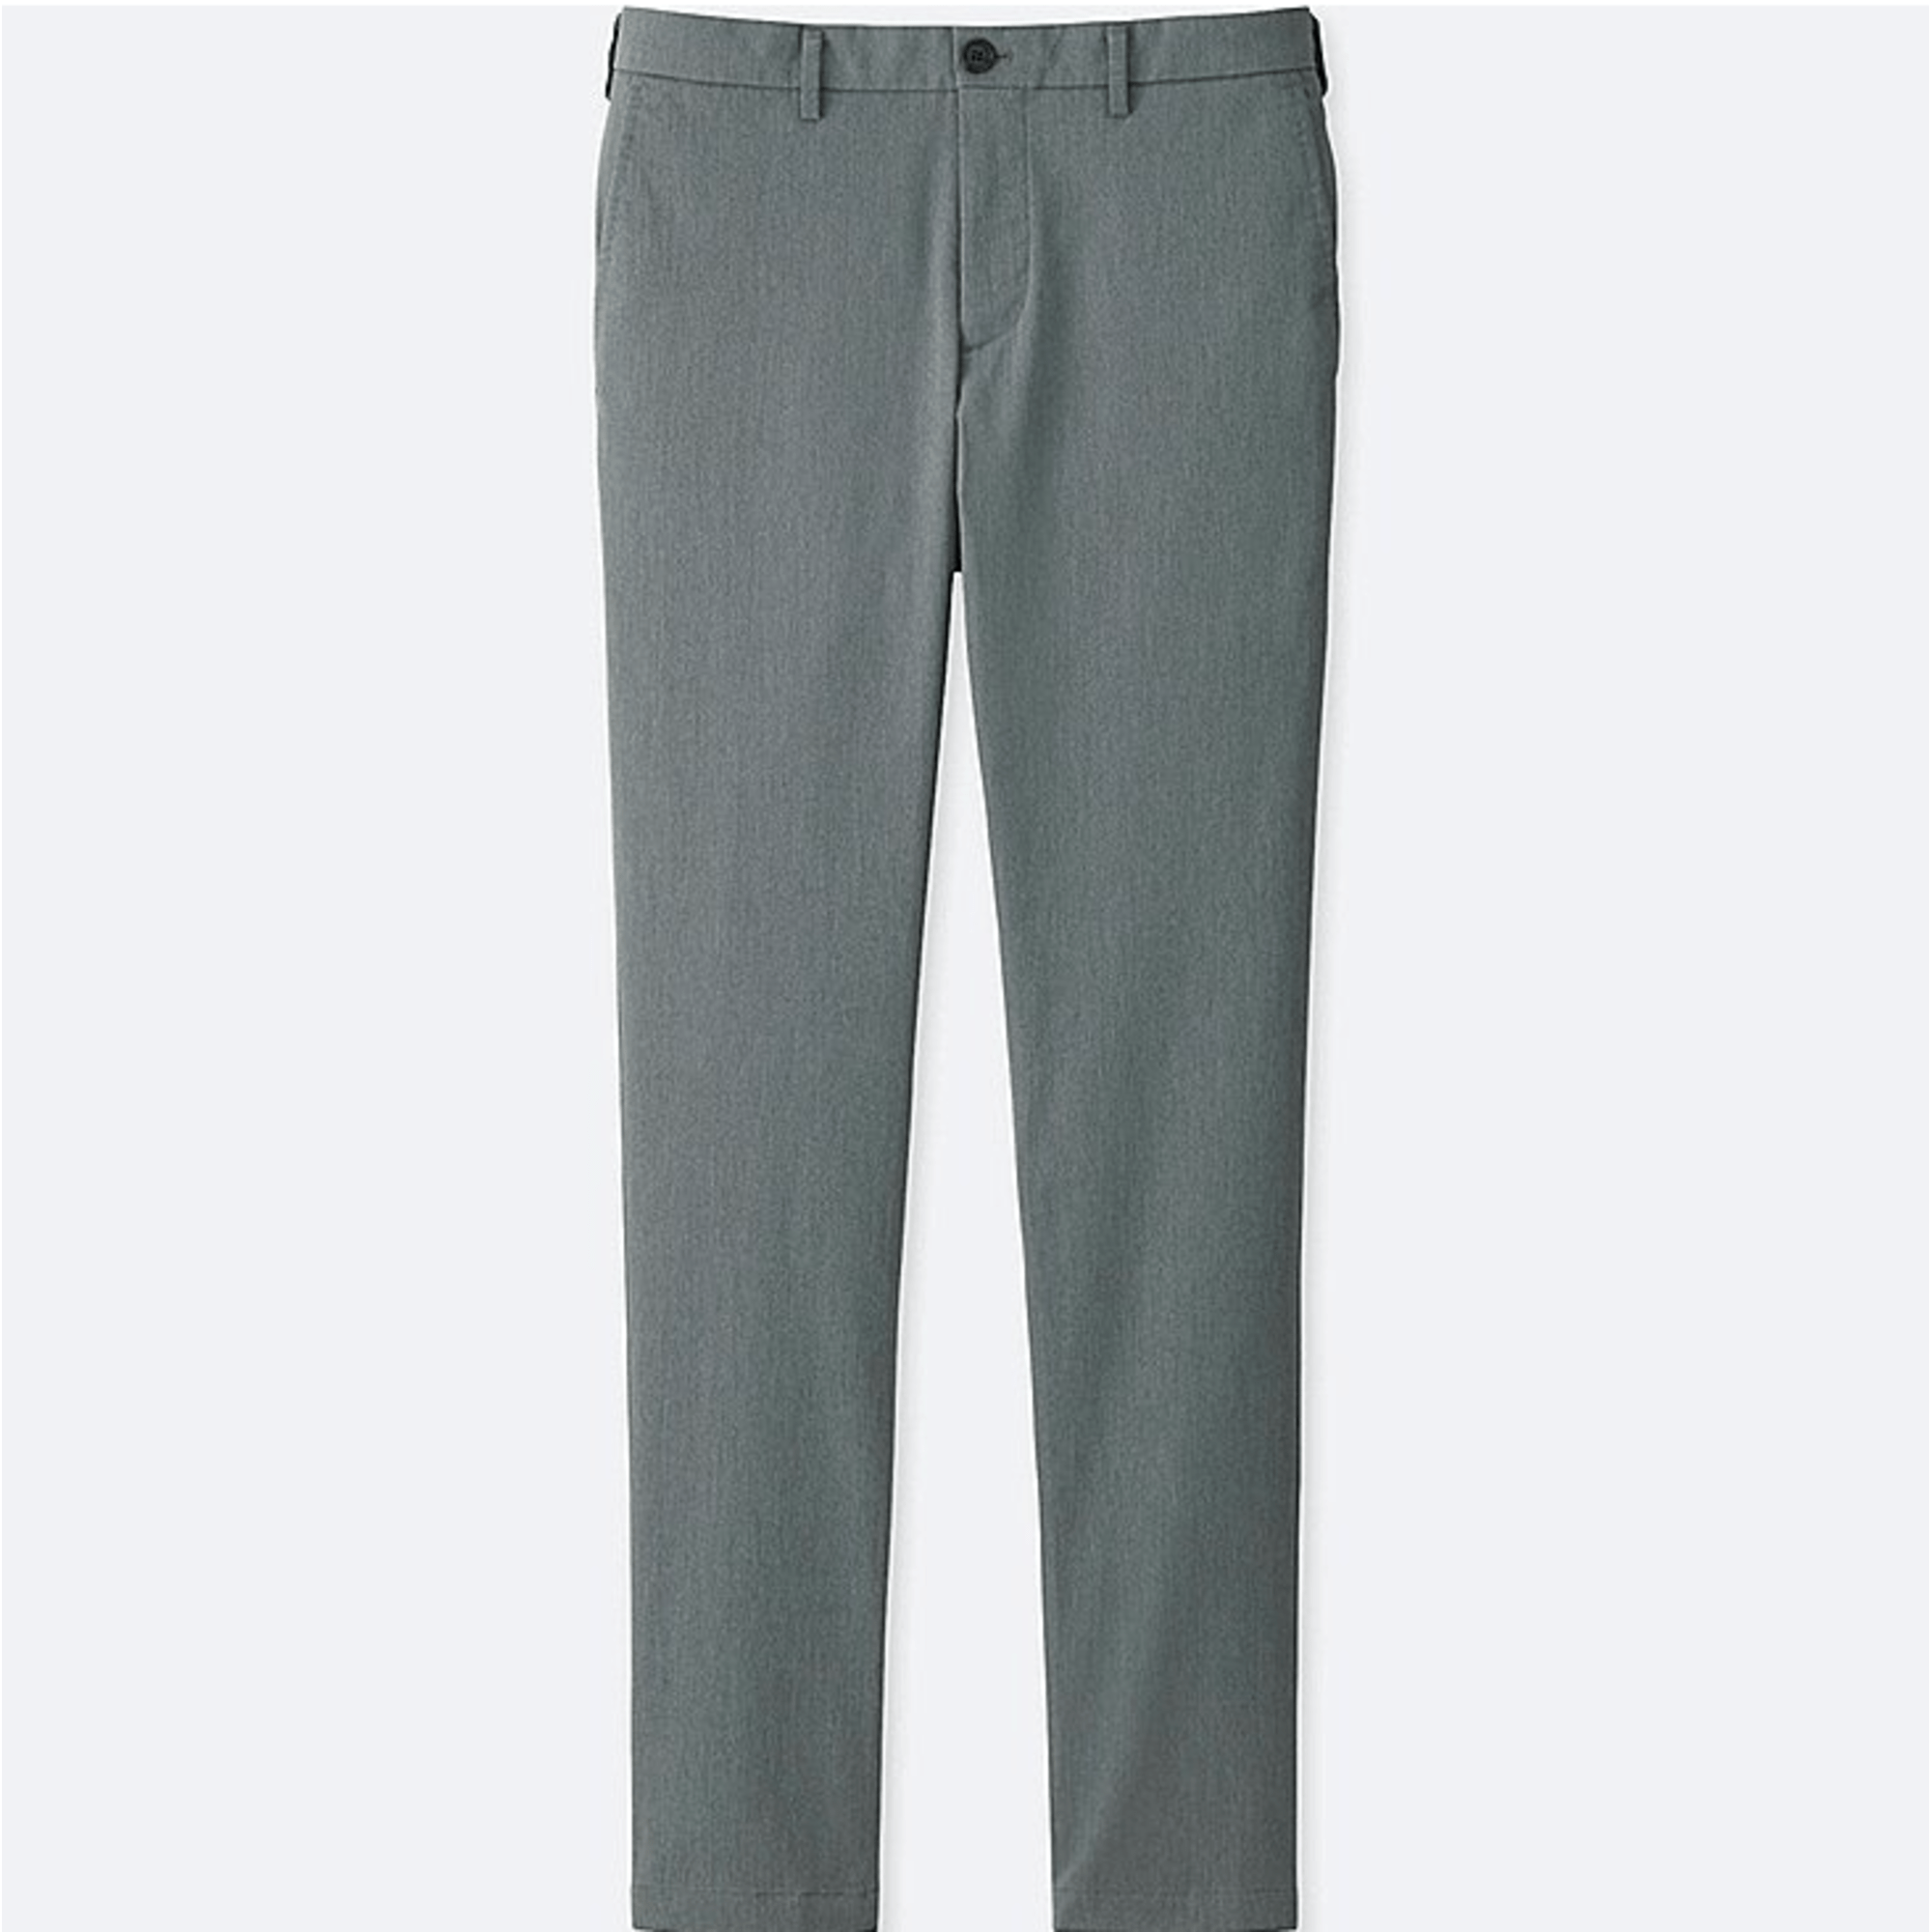 plus récent 743ef e050f Pantalon slim